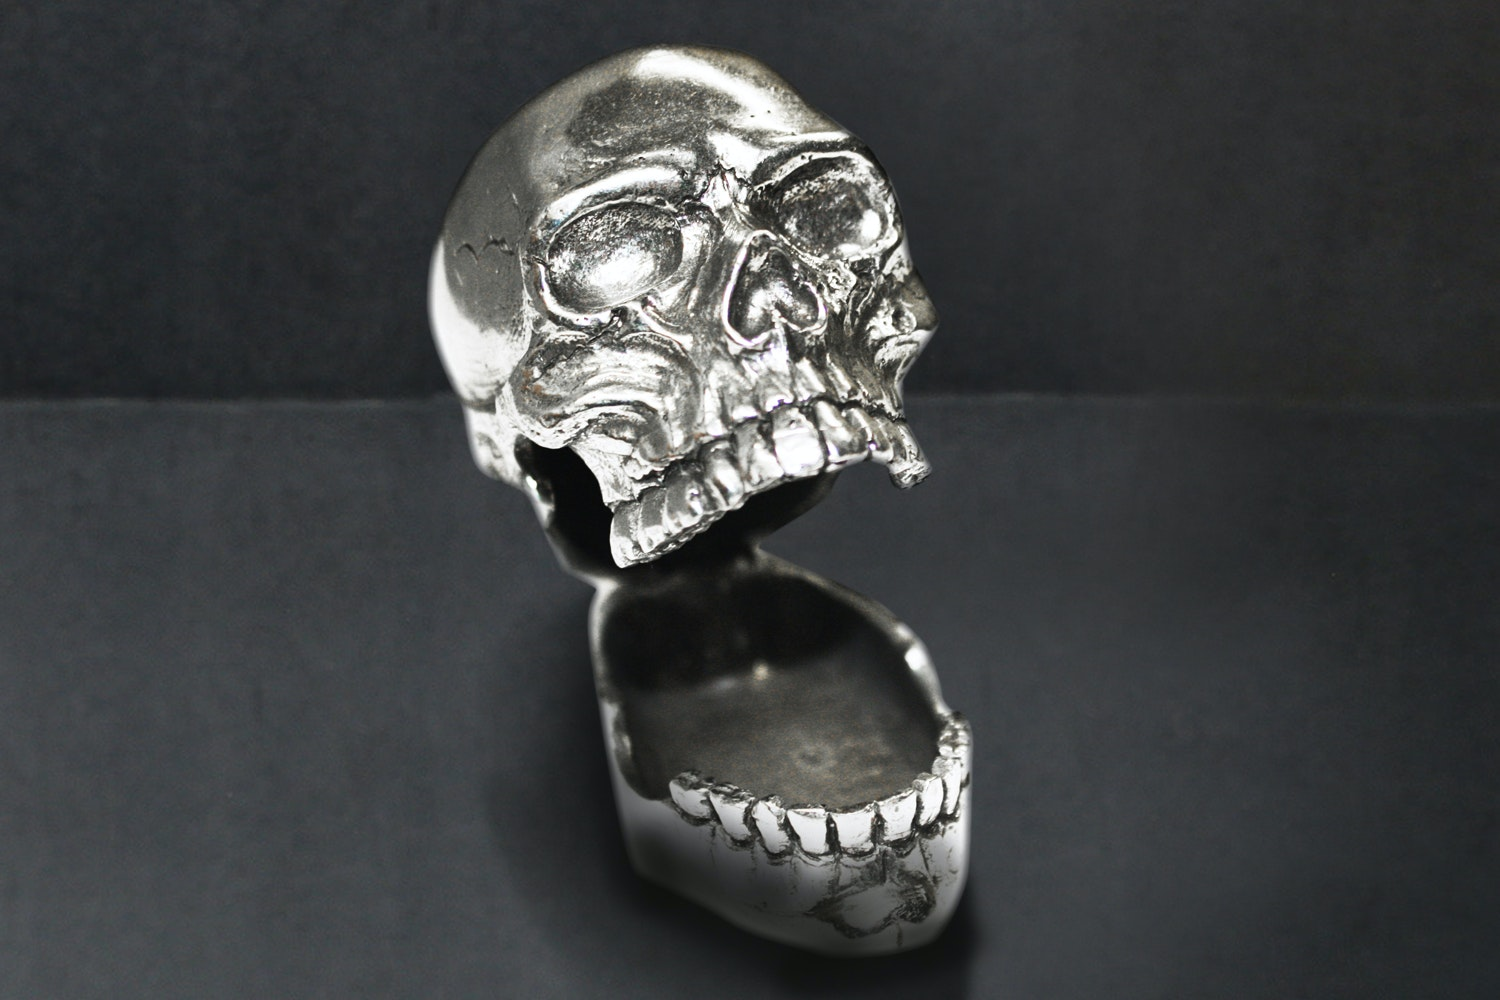 Laugh Out Loud Skull (+ $25)